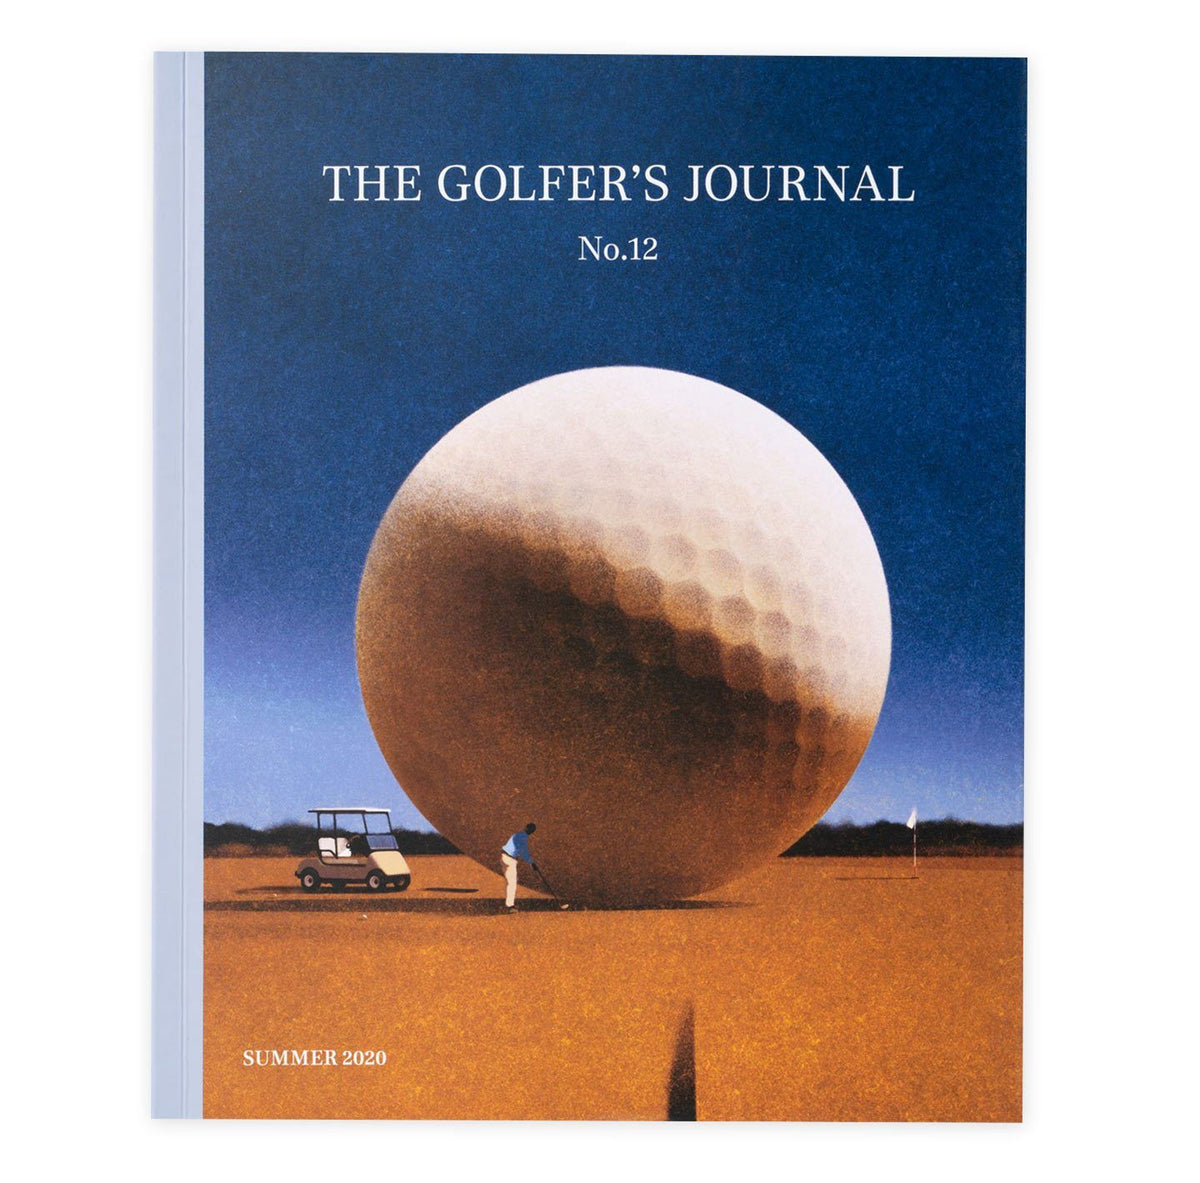 The Golfer's Journal #12